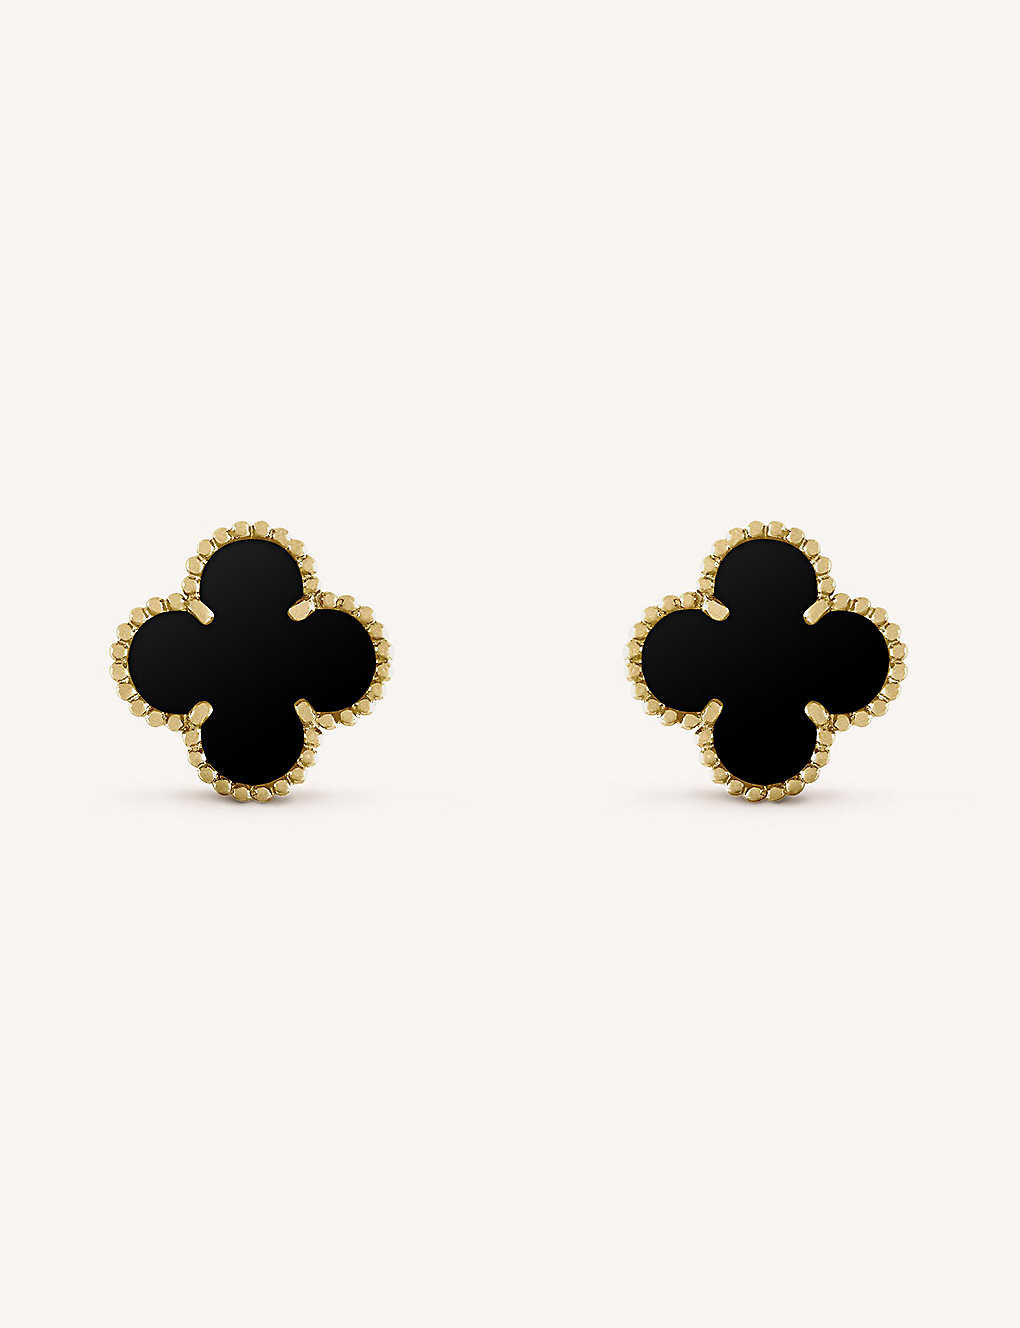 51a27a408 VAN CLEEF & ARPELS - Vintage Alhambra gold and onyx earrings ...